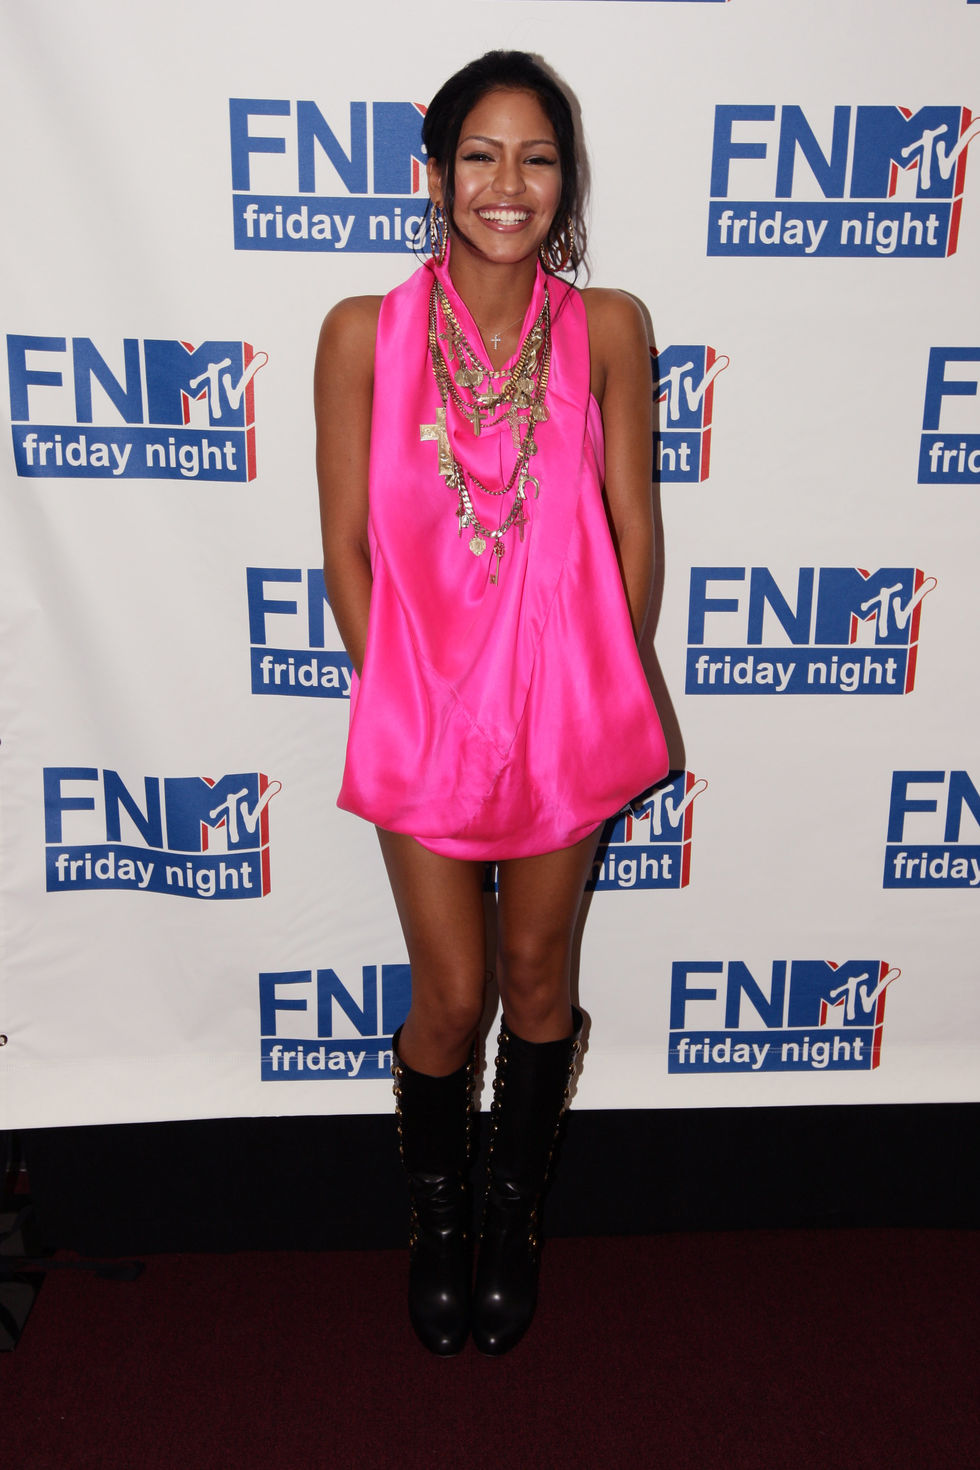 cassie-at-the-mtvs-fnmtv-01